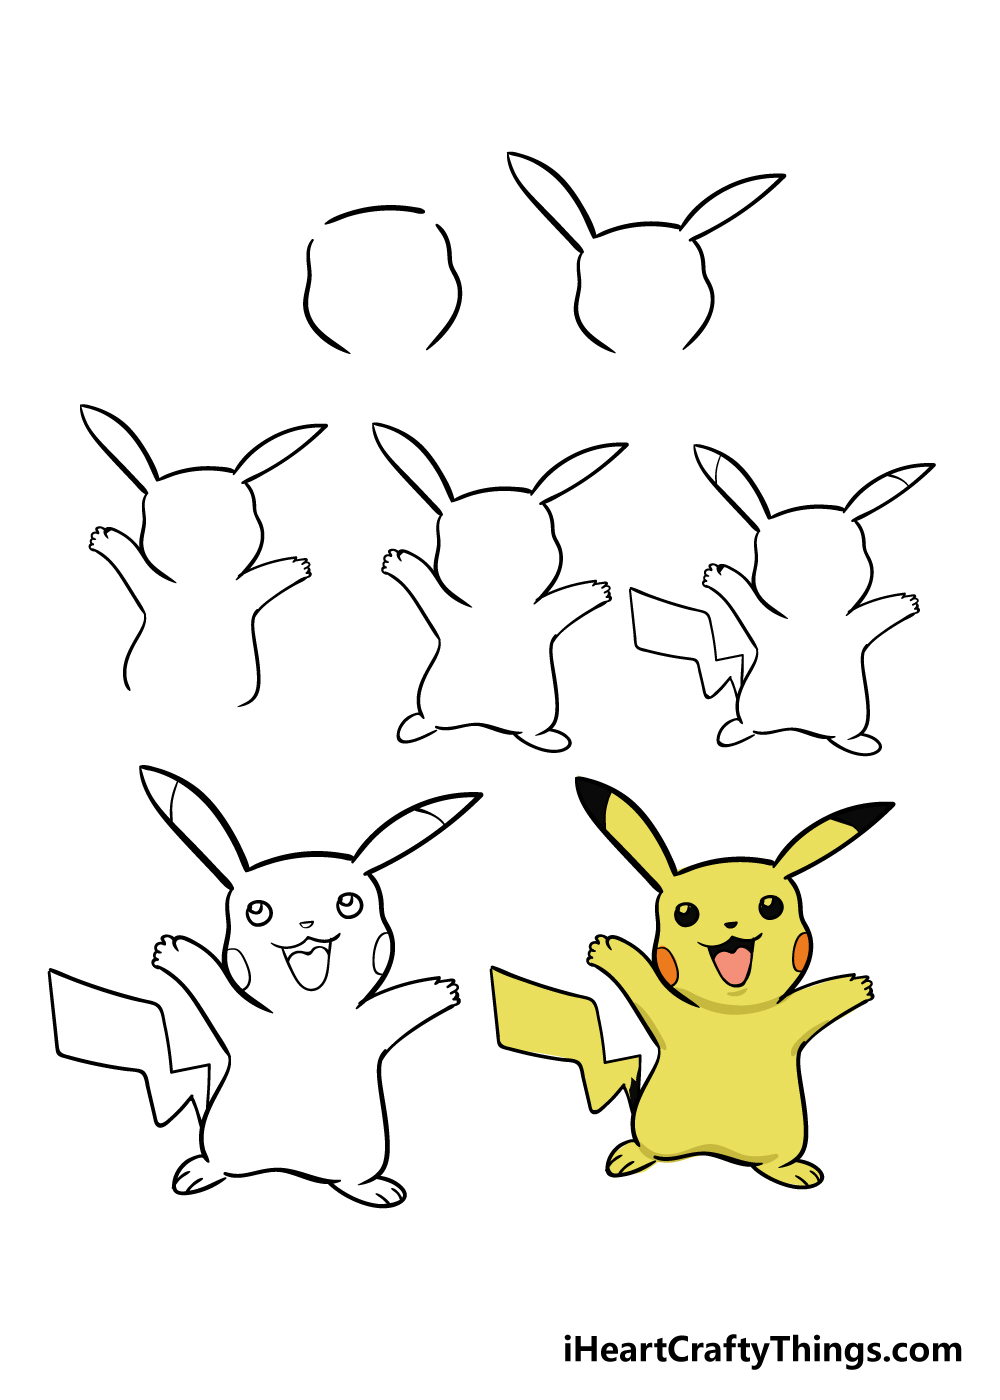 how to draw pikachu in 7 steps